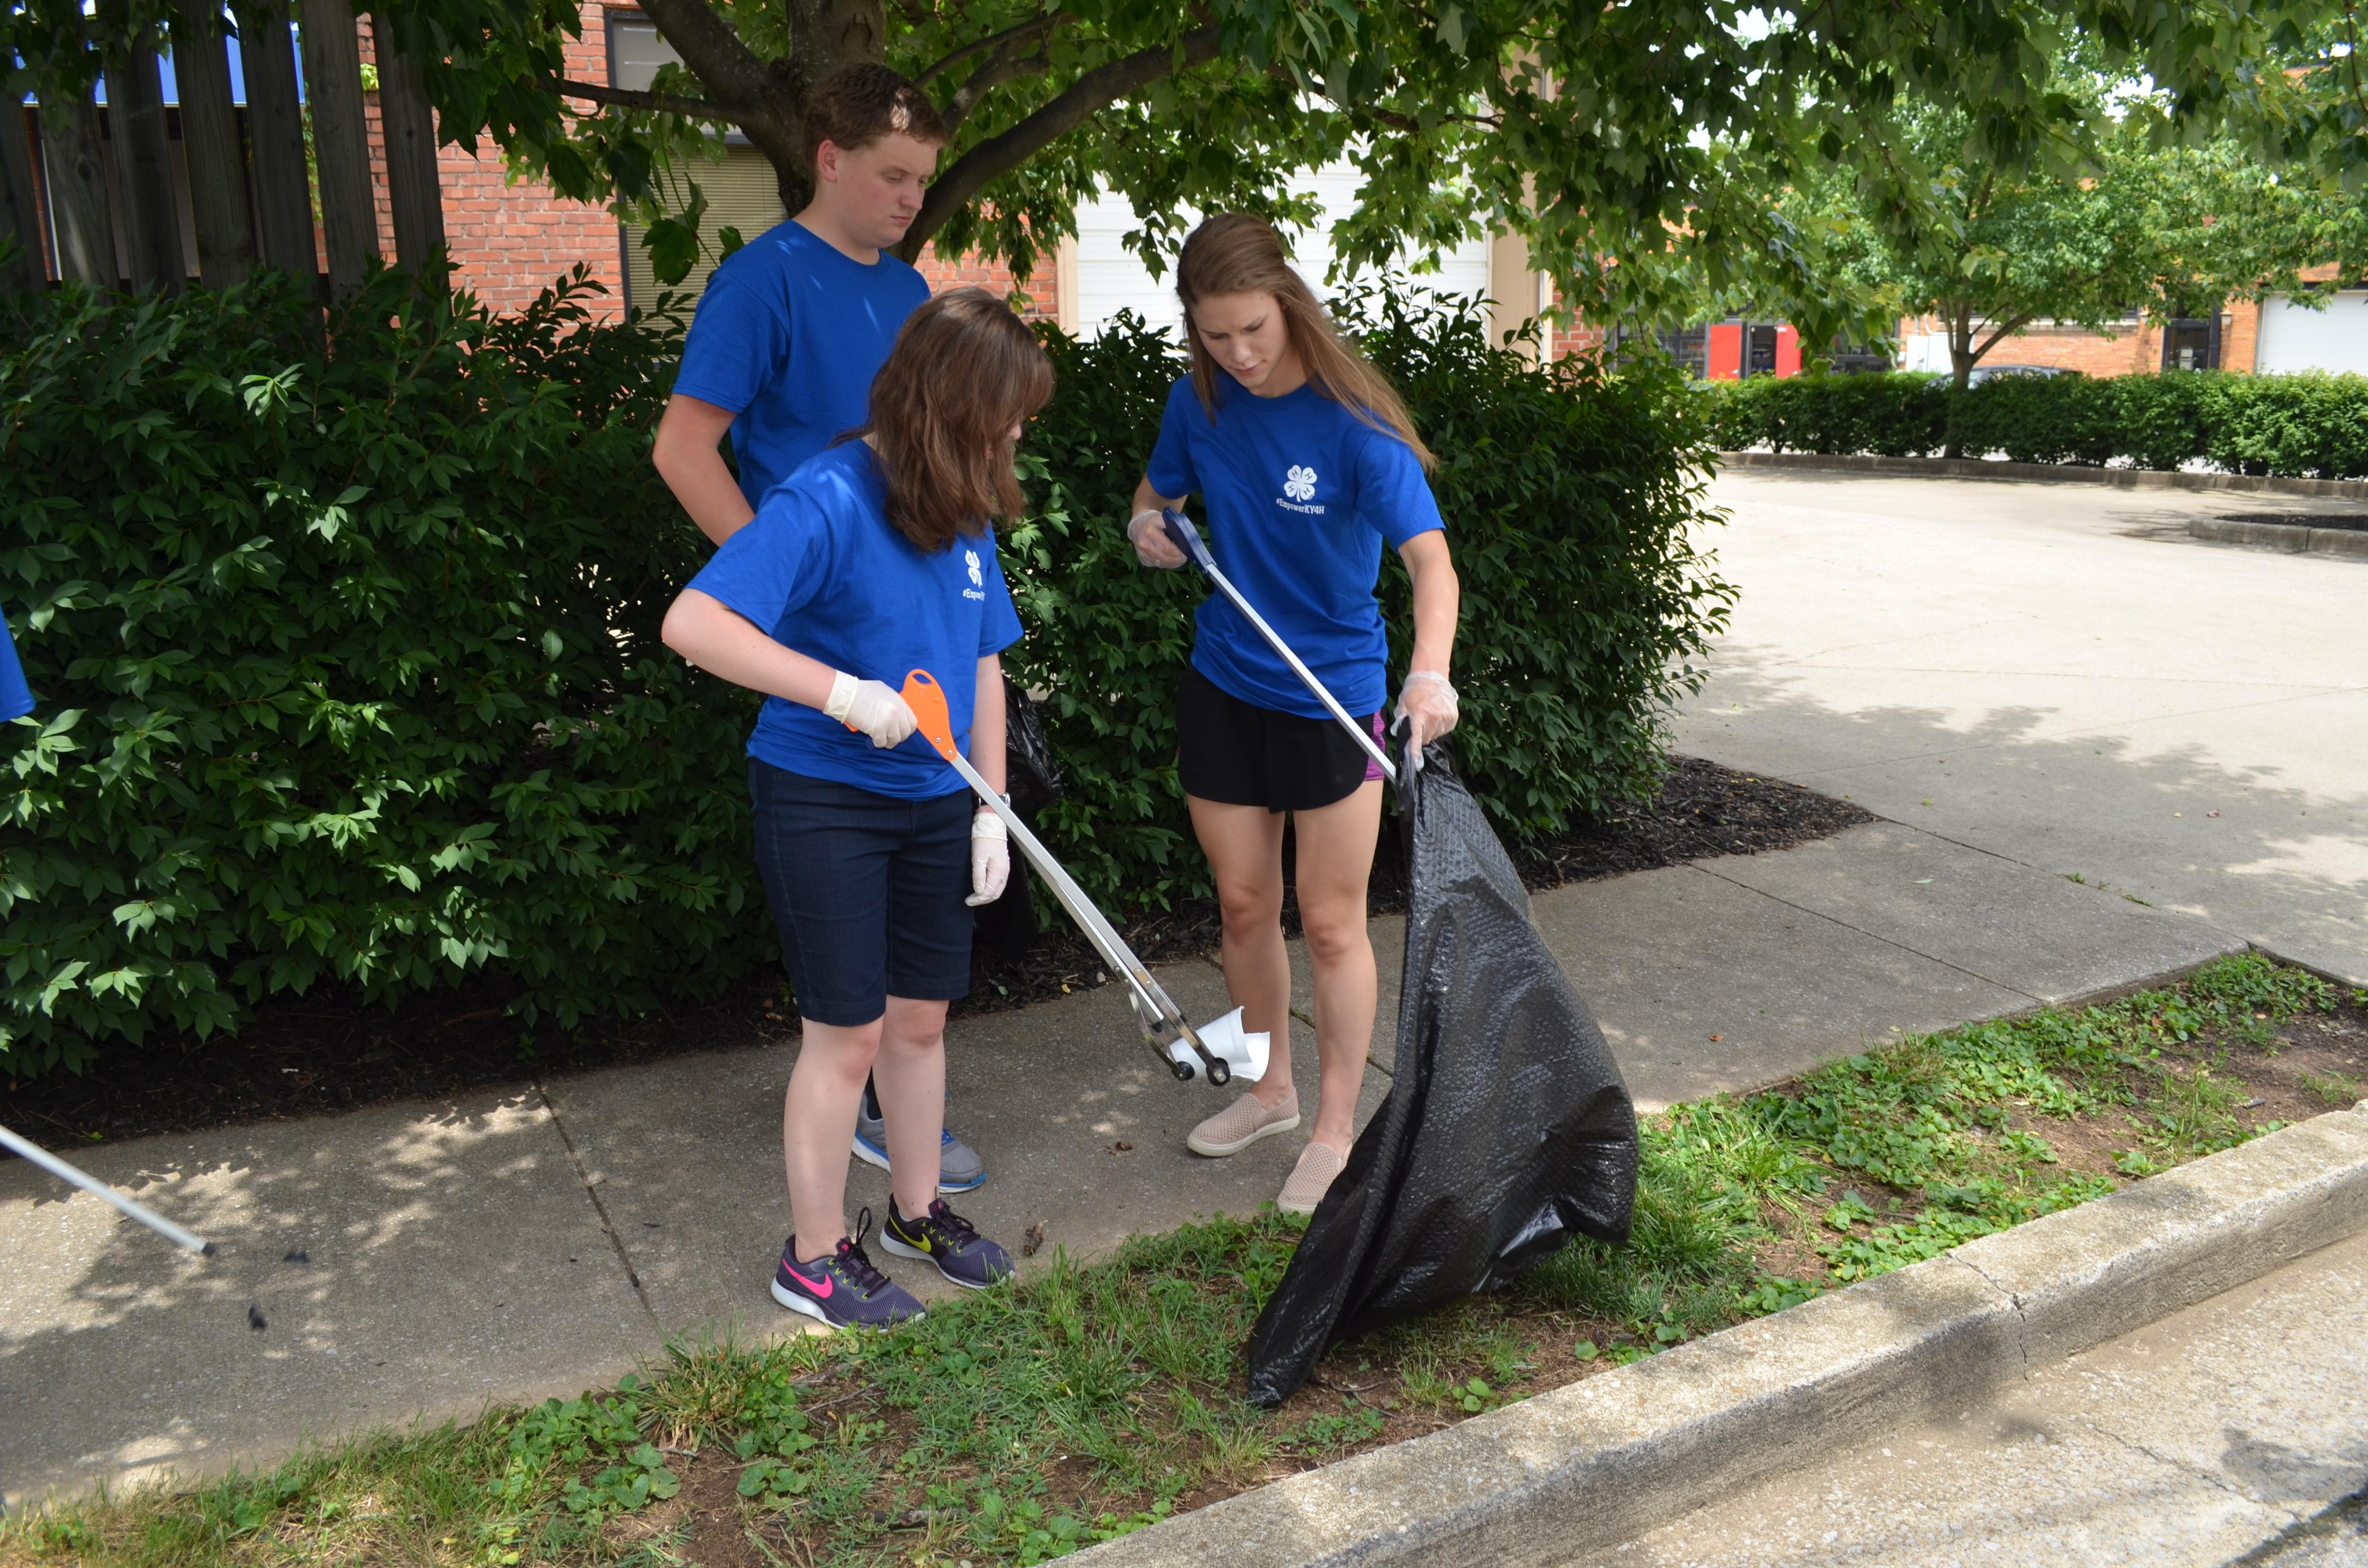 Kentucky 4-H'ers (l-r): Kayla Mohon, Raymond Carter, and Debbie Myers, pick up litter in a downtown Lexington neighborhood as part of their community service project with Bluegrass Greensource